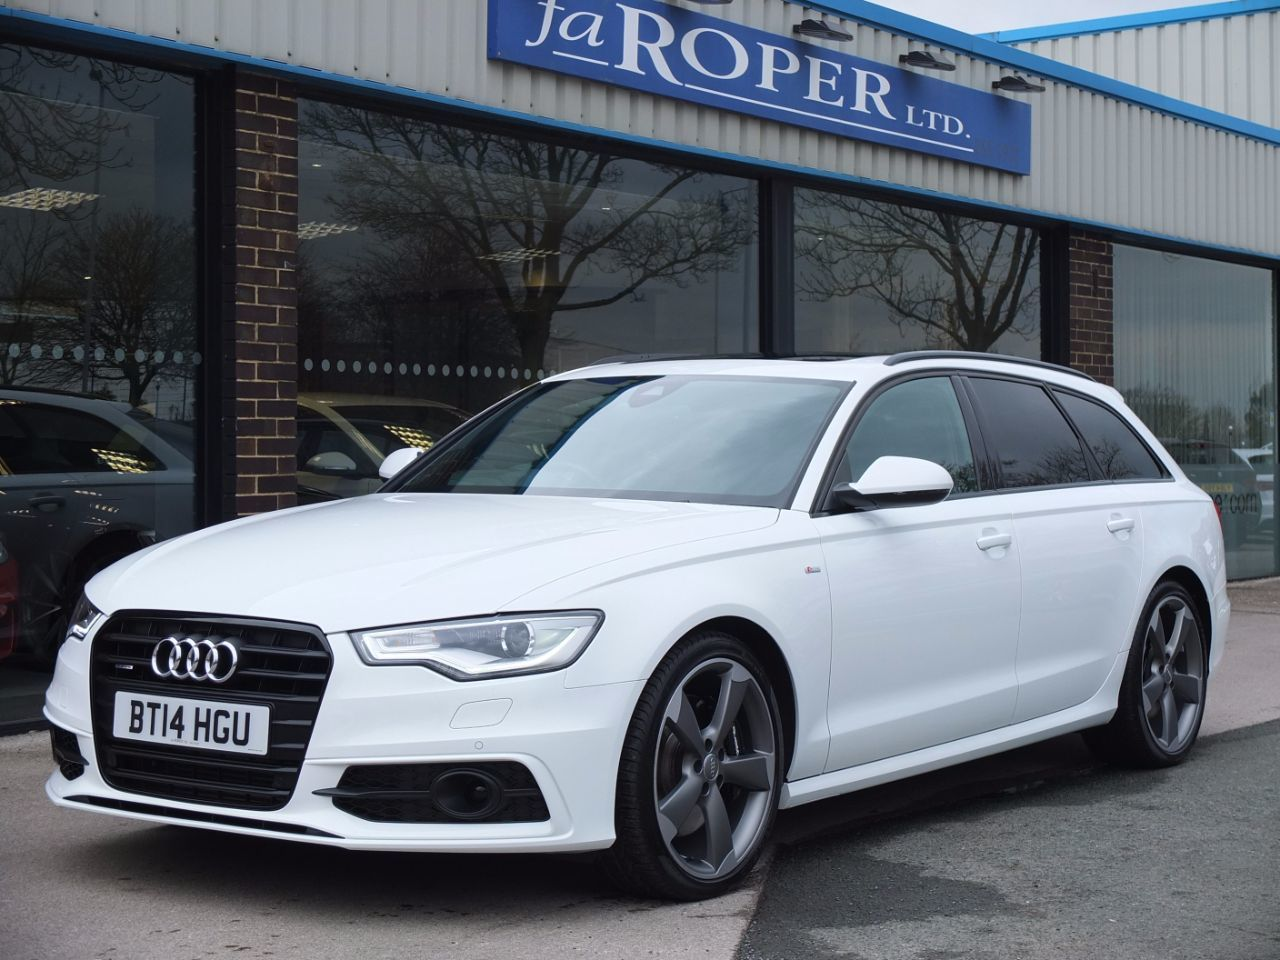 Audi A6 Avant 3.0 BiTDI quattro Black Edition Tiptronic 313ps Estate Diesel Ibis WhiteAudi A6 Avant 3.0 BiTDI quattro Black Edition Tiptronic 313ps Estate Diesel Ibis White at fa Roper Ltd Bradford